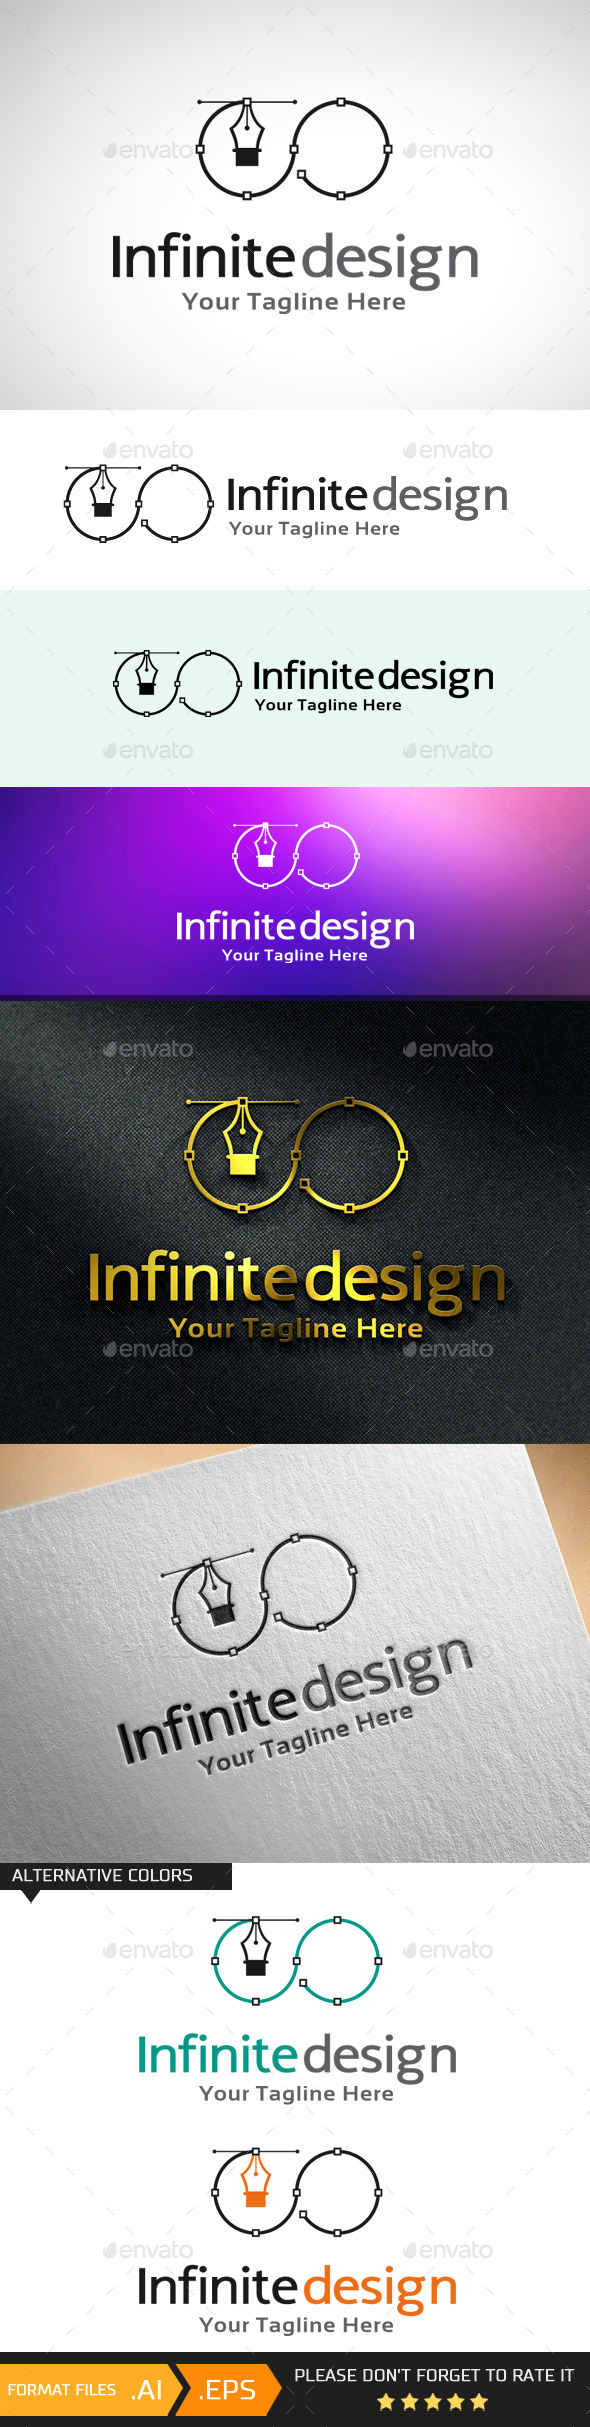 Infinite Design Logo Template - Objects Logo Templates